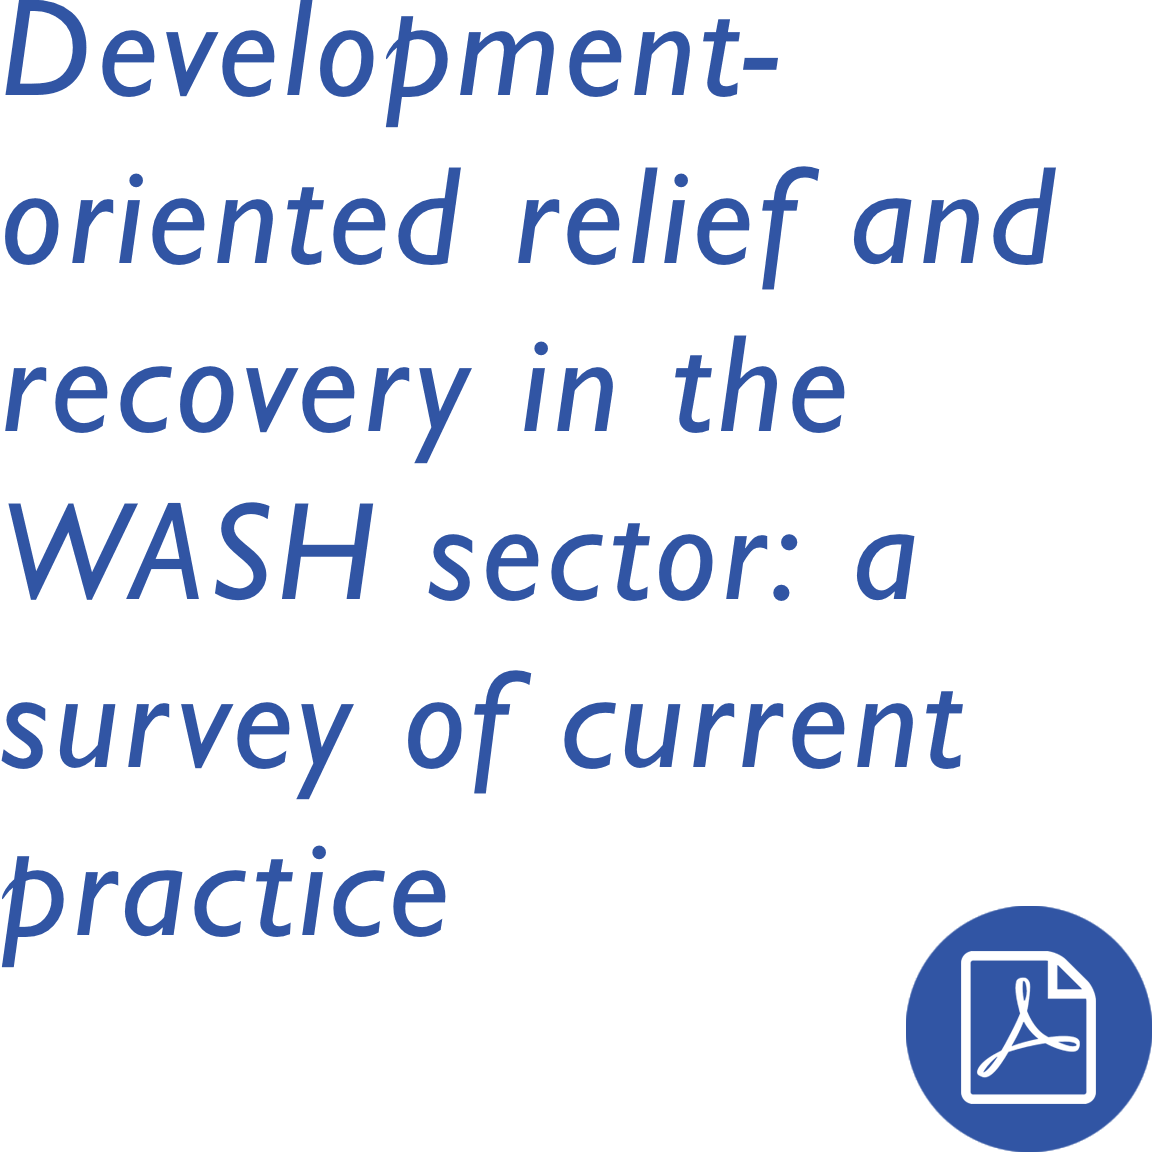 Development-oriented relief and recovery in the WASH sector: a survey of current practice